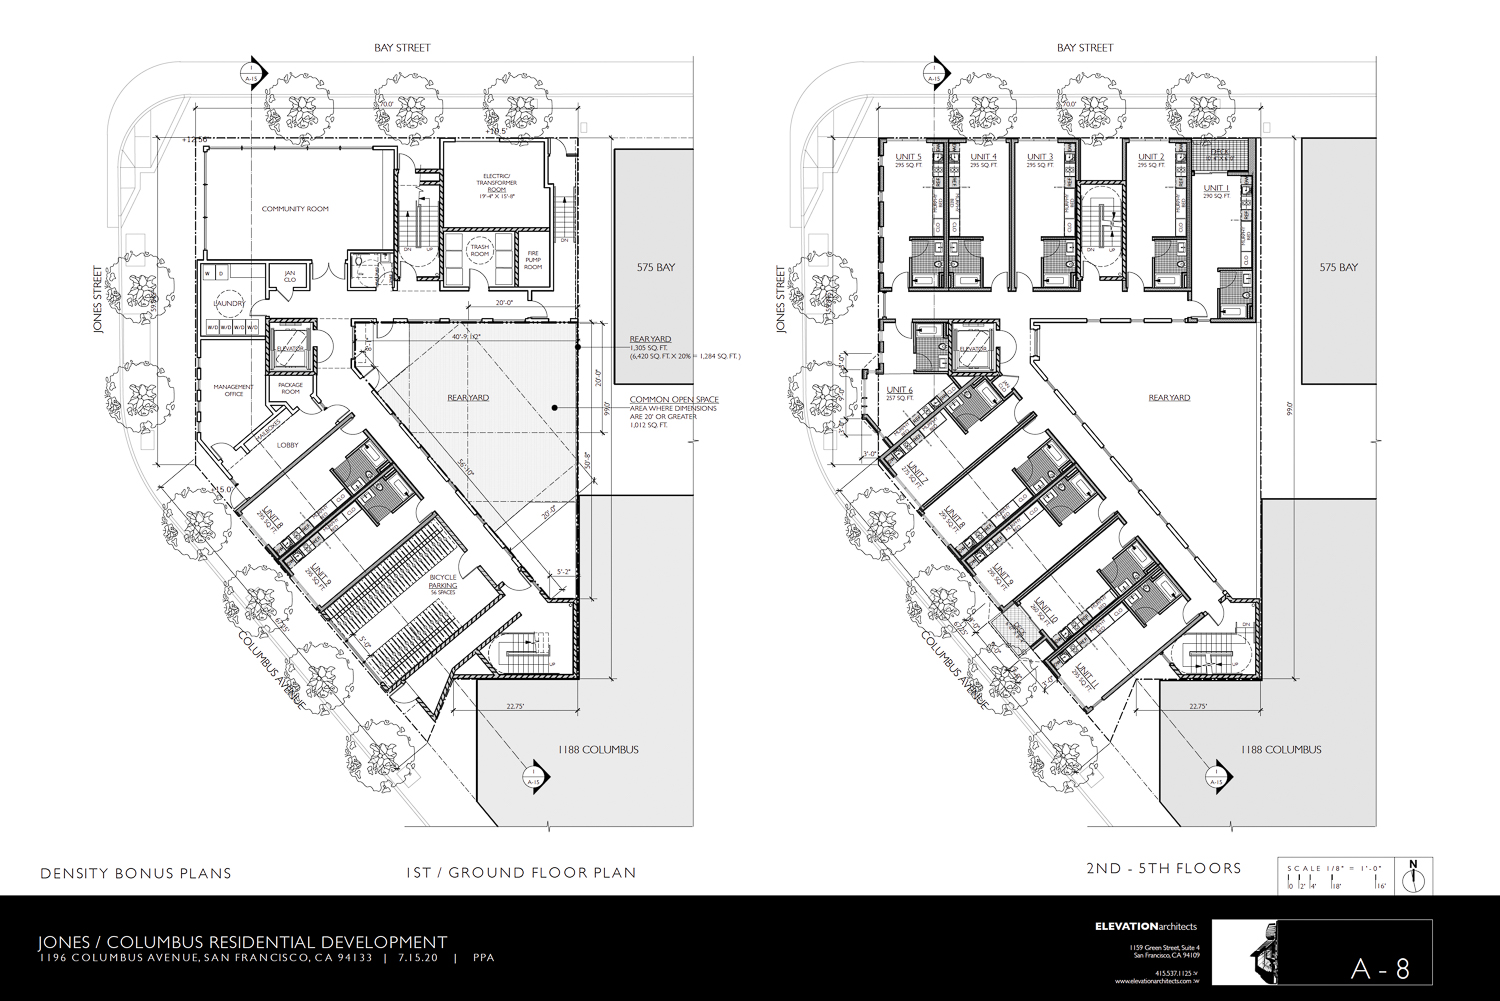 1196 Columbus Avenue ground floor plan, illustration by Elevation Architects